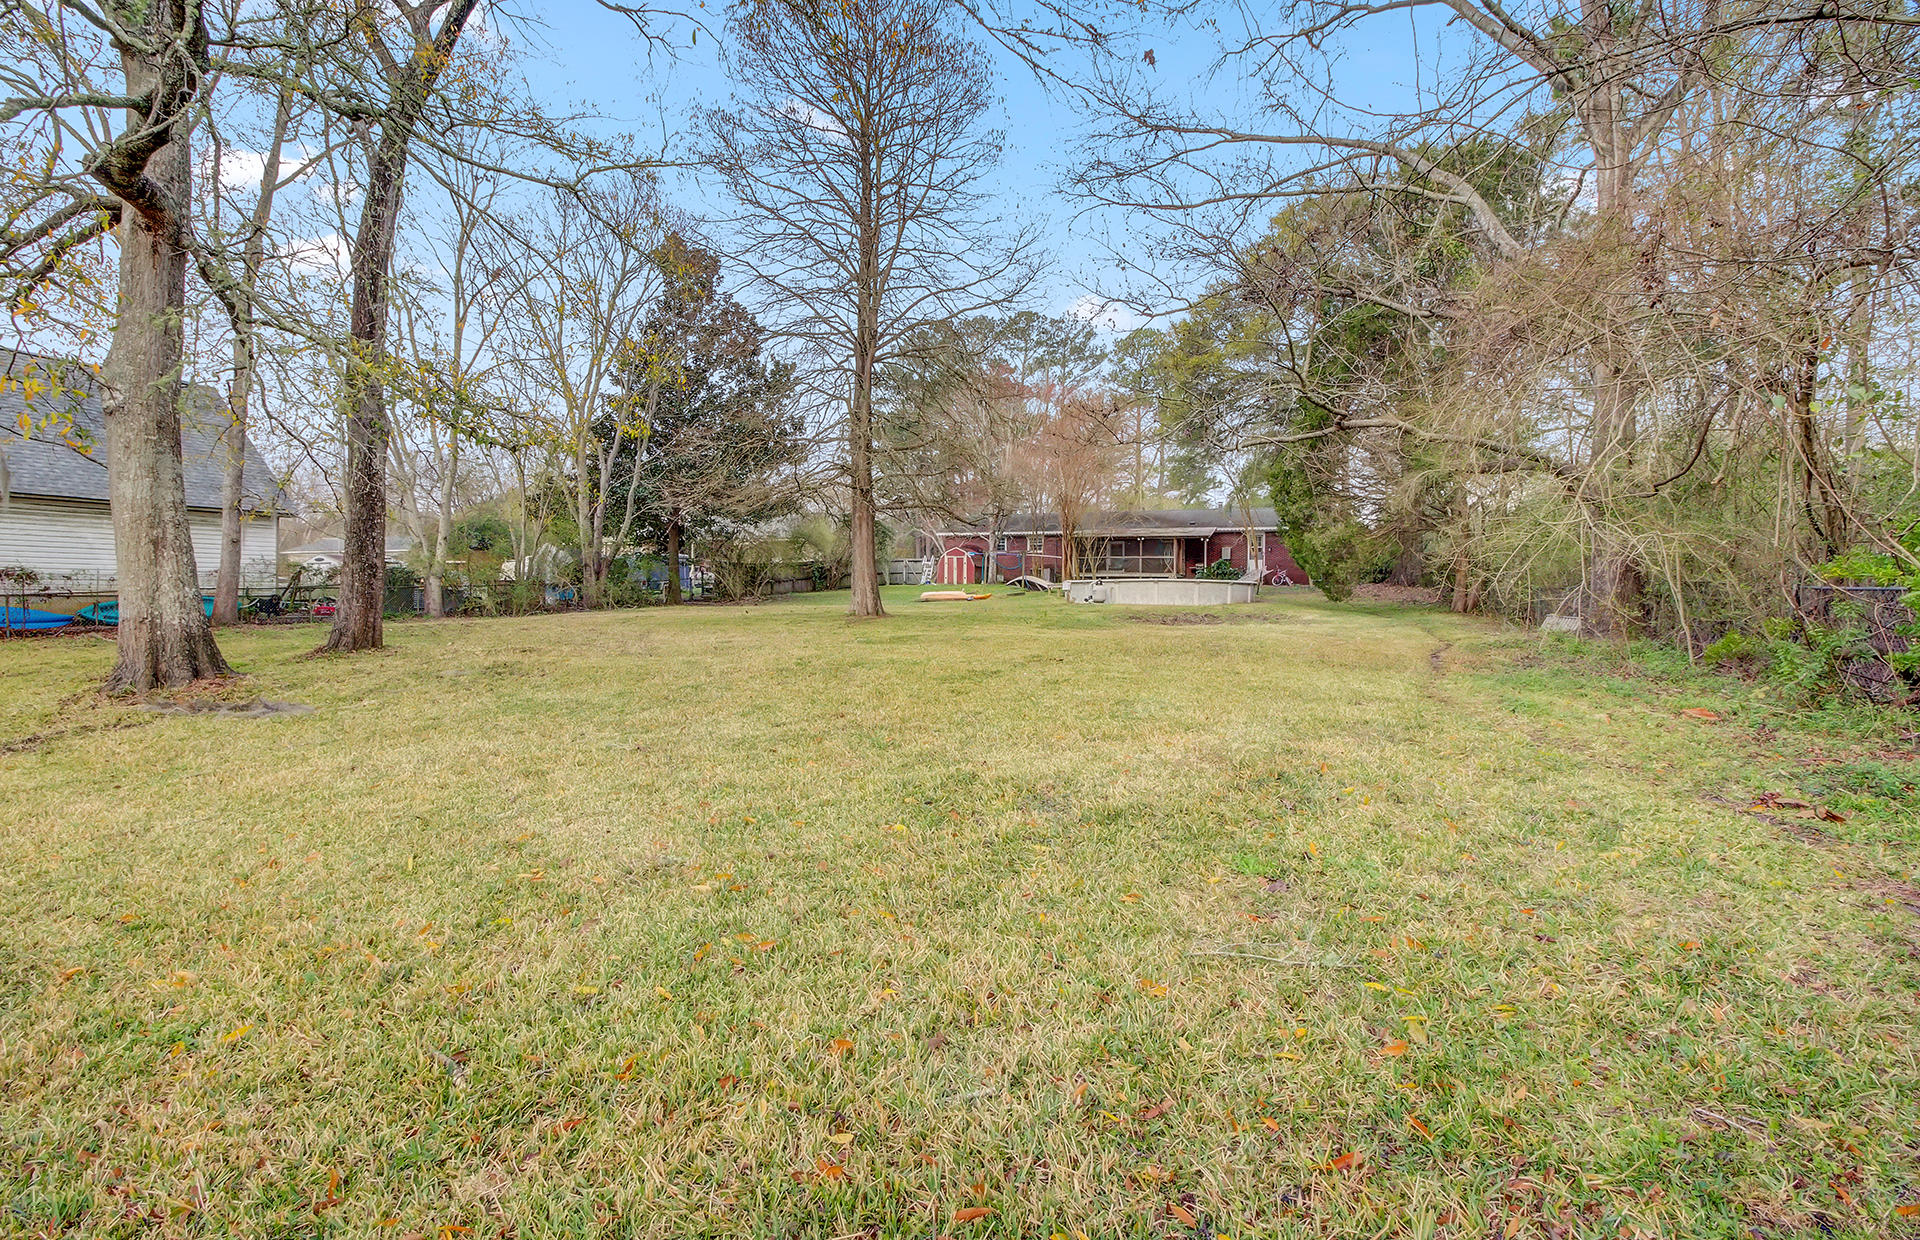 Tranquil Acres Homes For Sale - 134 Tranquil, Ladson, SC - 8